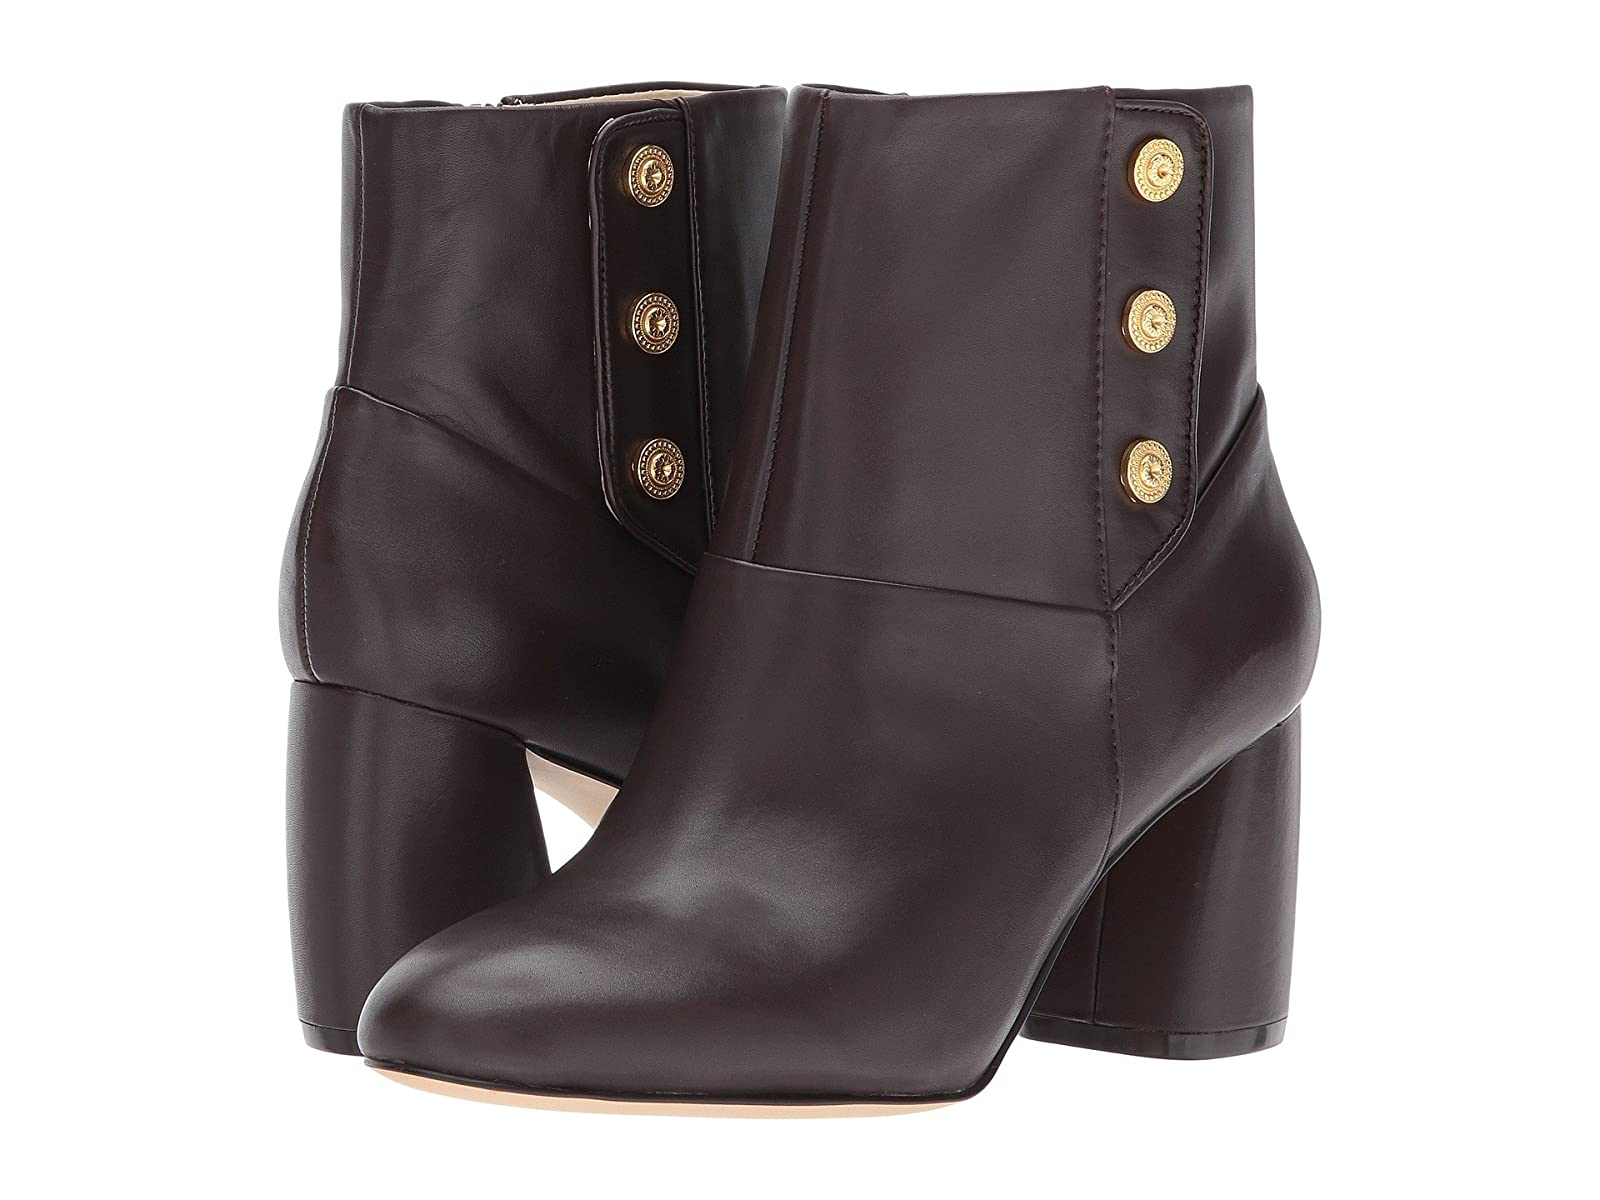 Nine West KirtleyCheap and distinctive eye-catching shoes